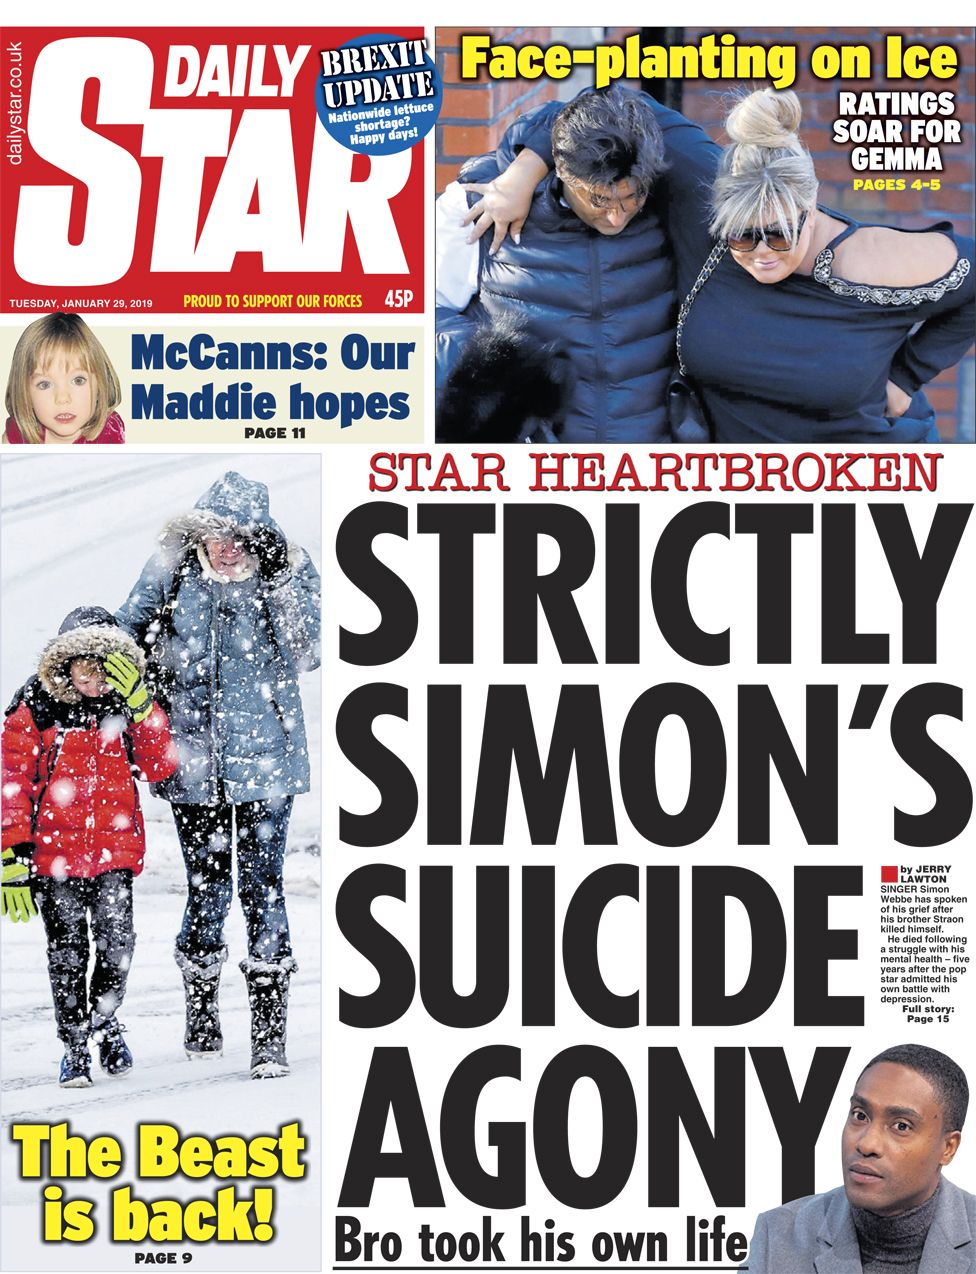 Daily Star front page - 29/01/19